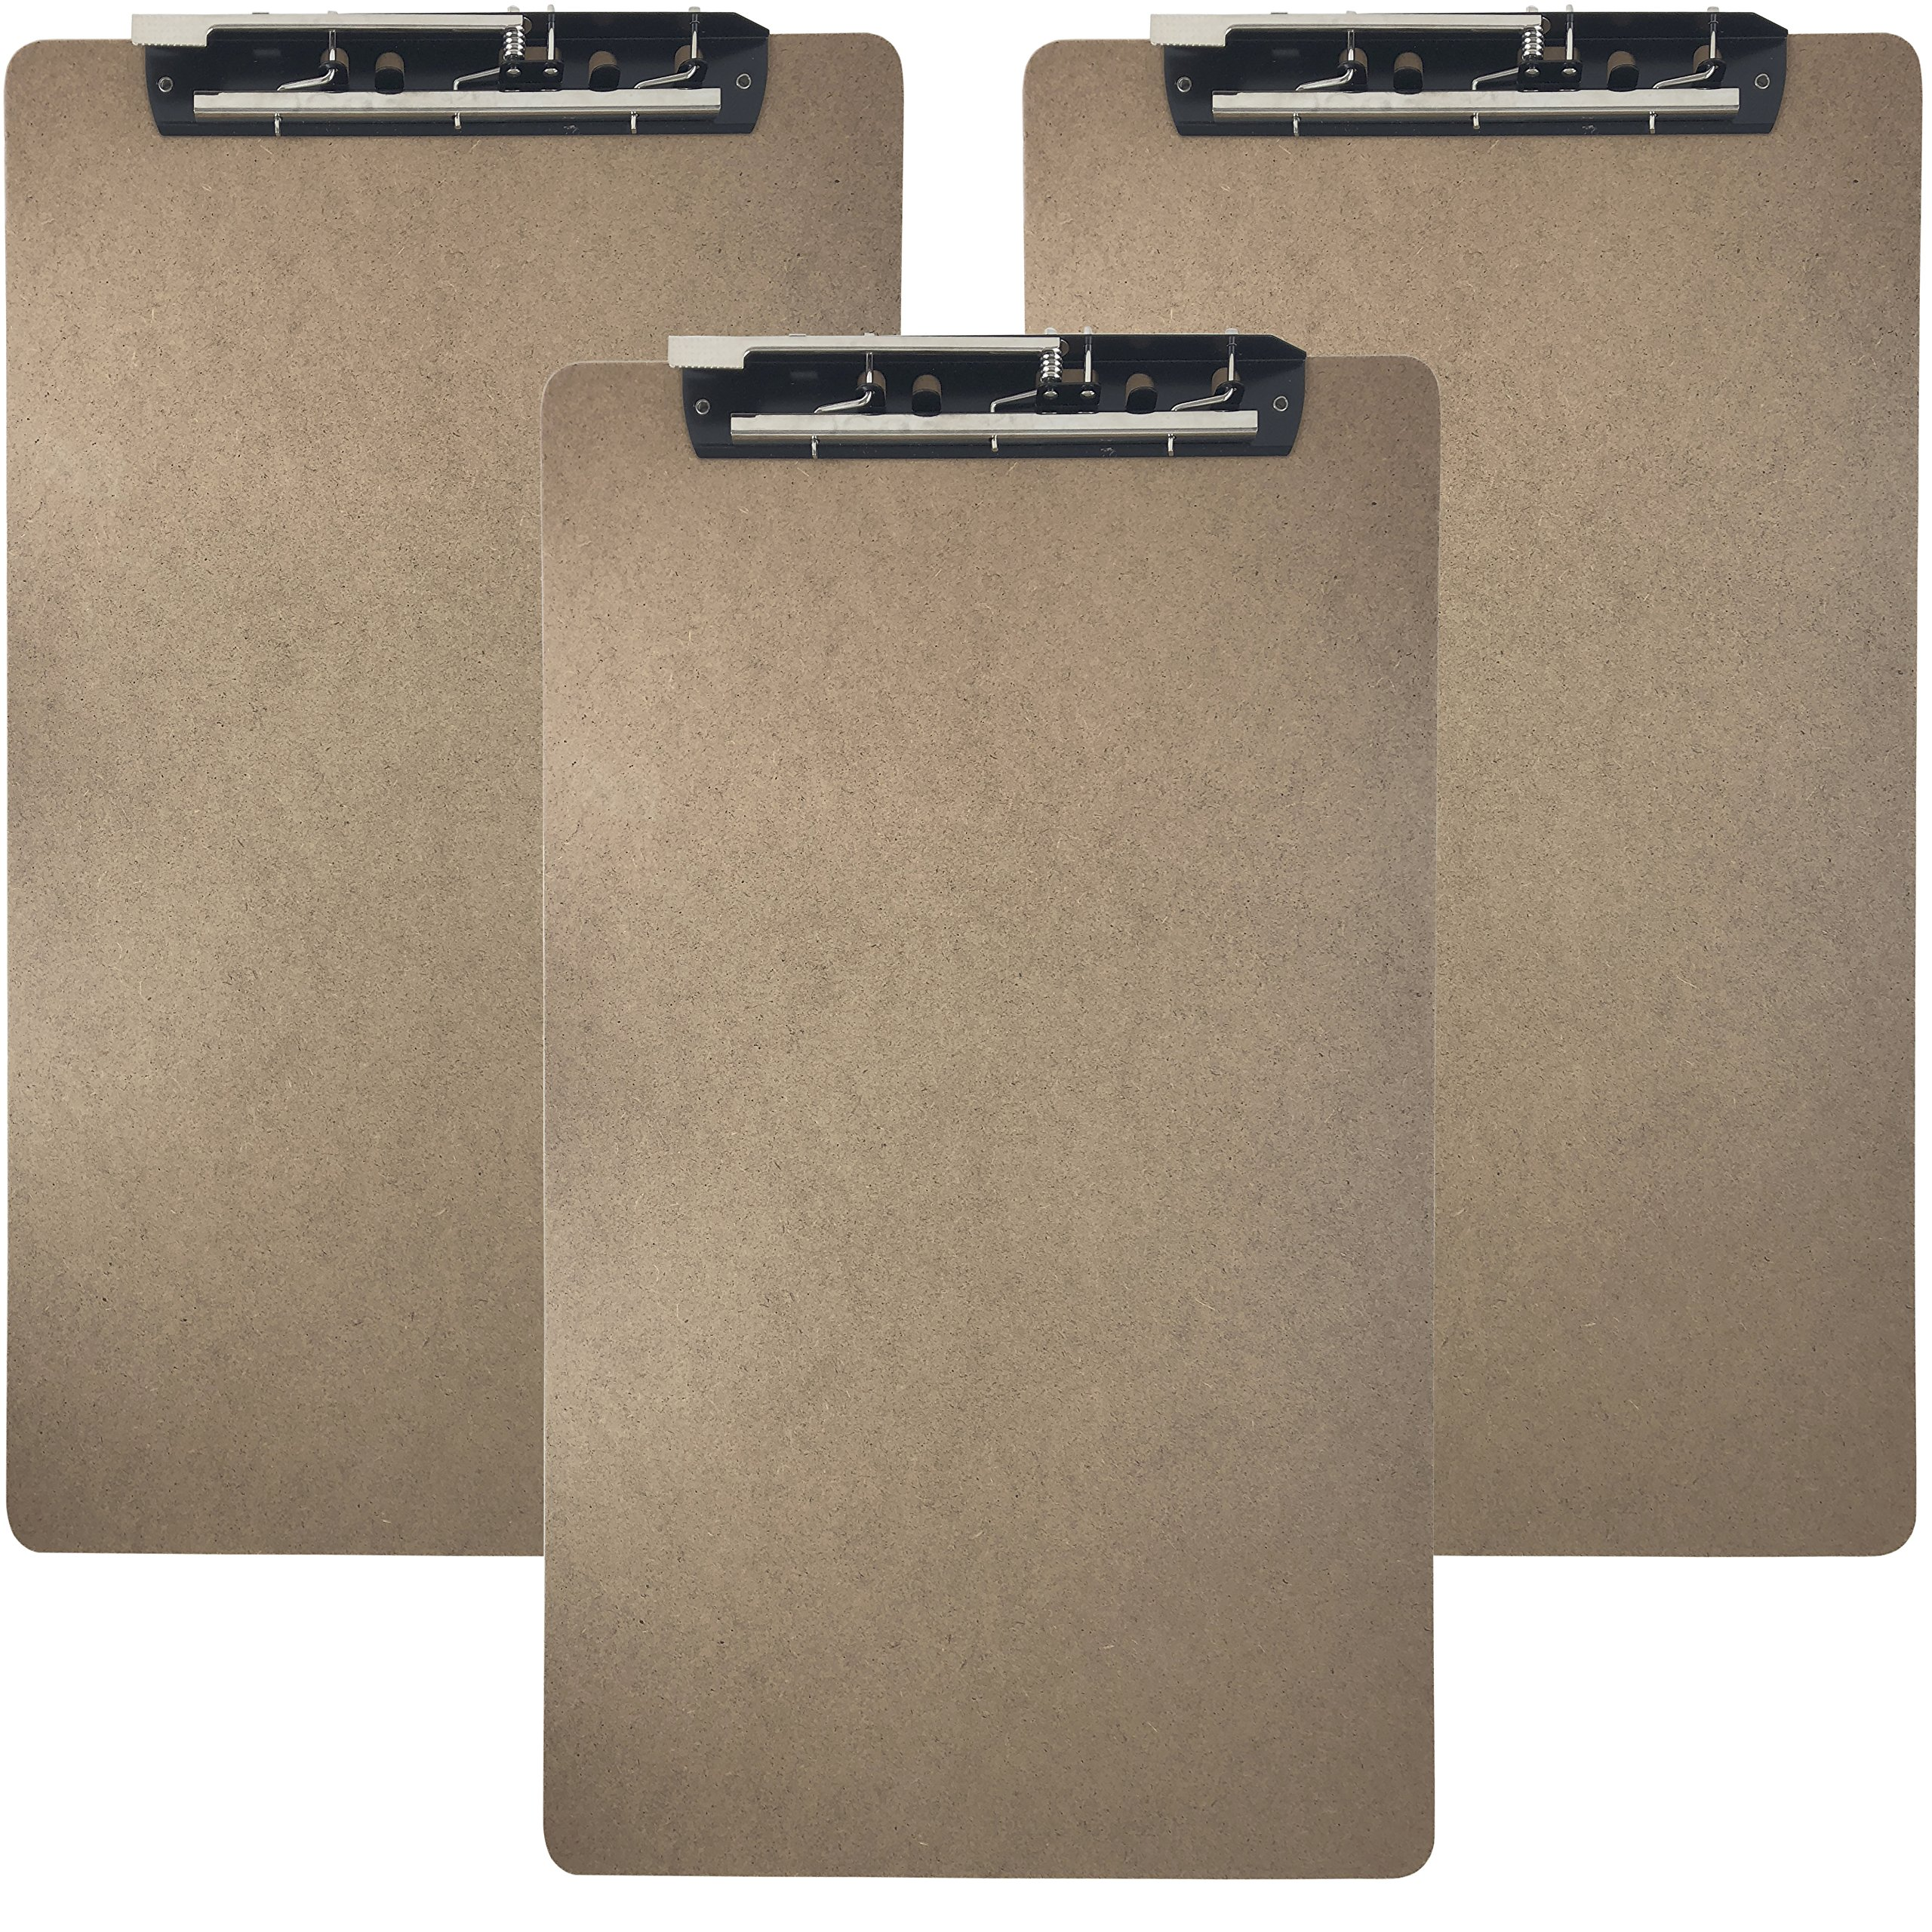 Trade Quest Ledger Size Clipboard Lever Hinge Clip 19.5'' x 11.6'' (Pack of 3) by Trade Quest (Image #1)